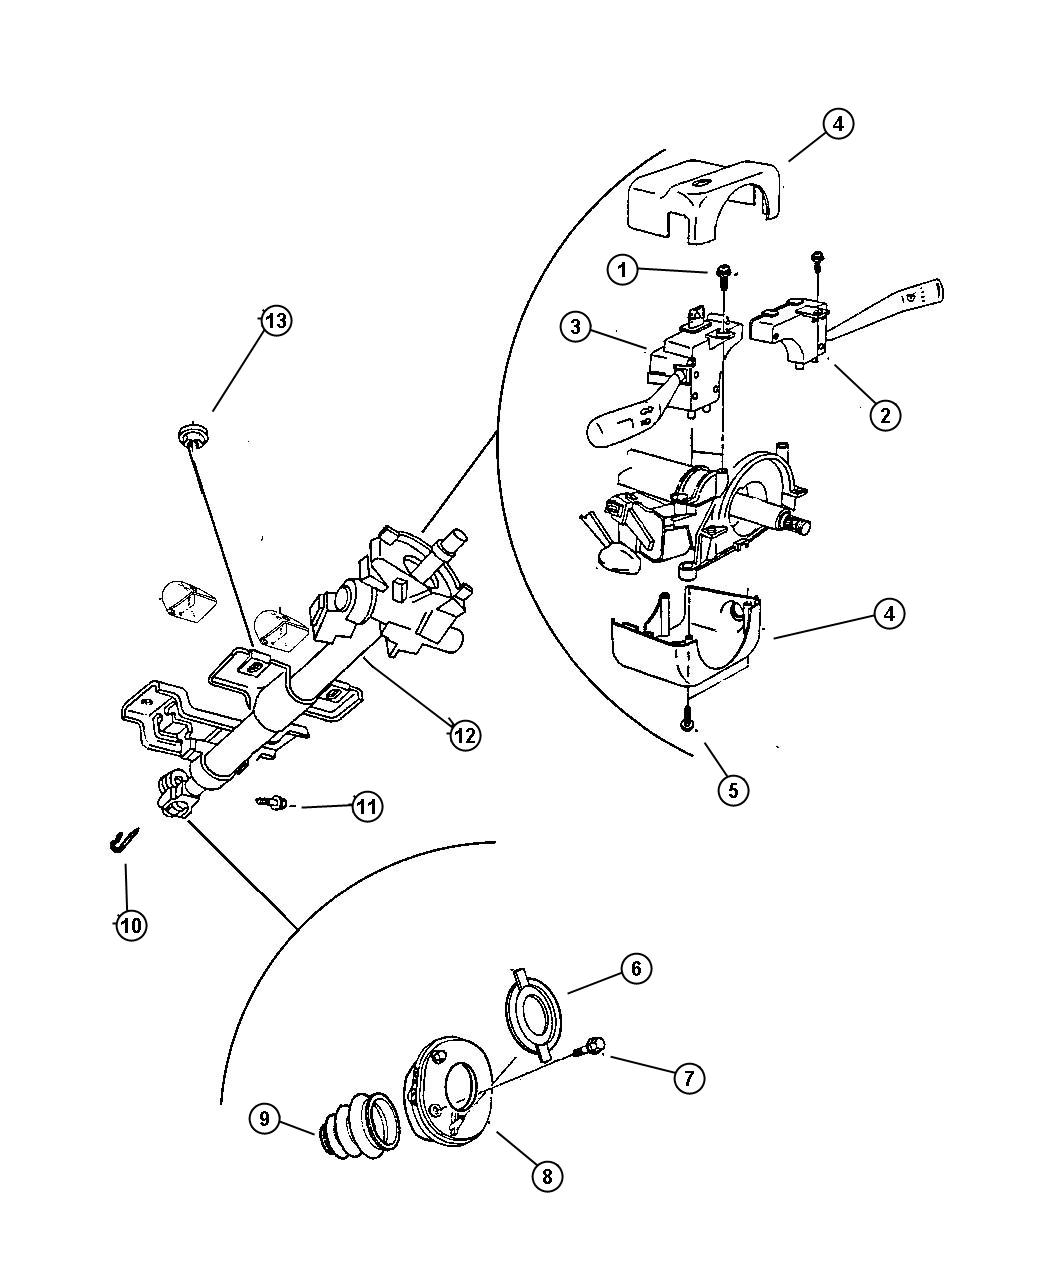 Diagram Jeep Cherokee Wiper Wiring Diagram Full Version